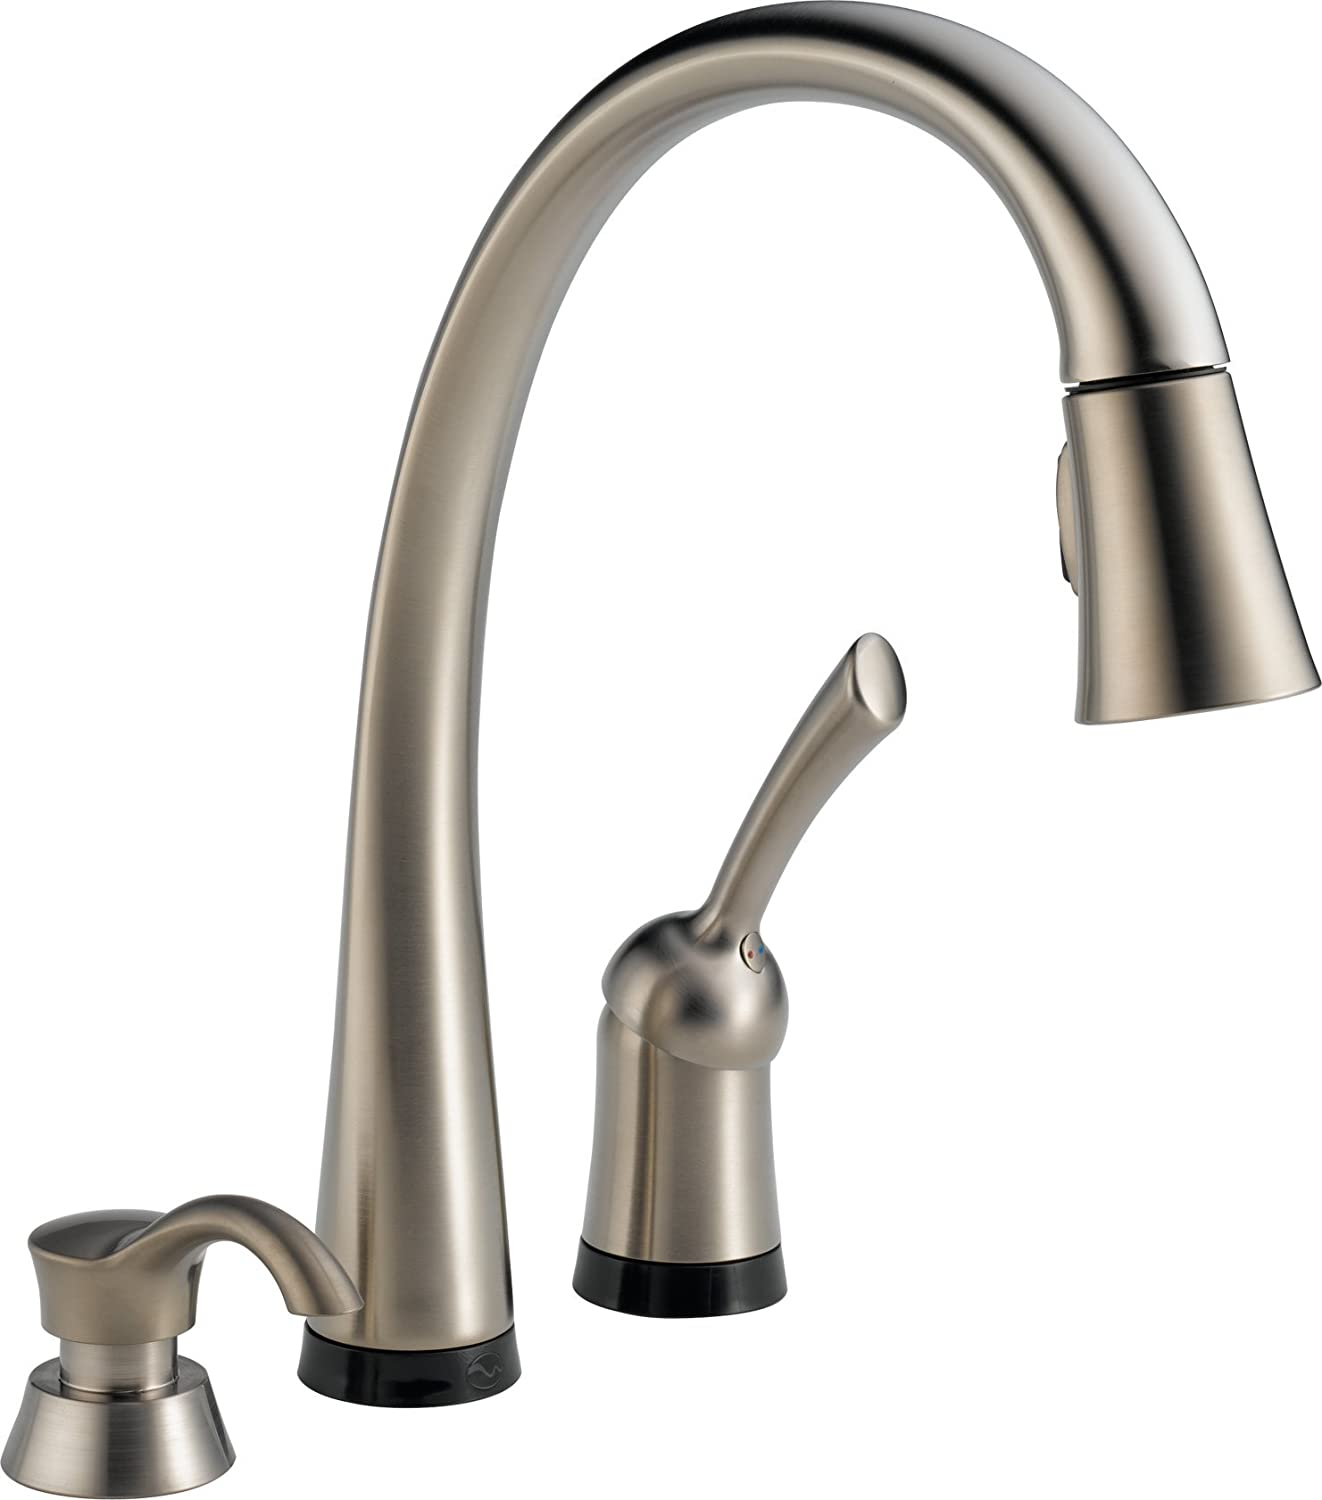 faucet with pull single handle dining brass together kitchen room polished blue white deck faucets down side designs mount